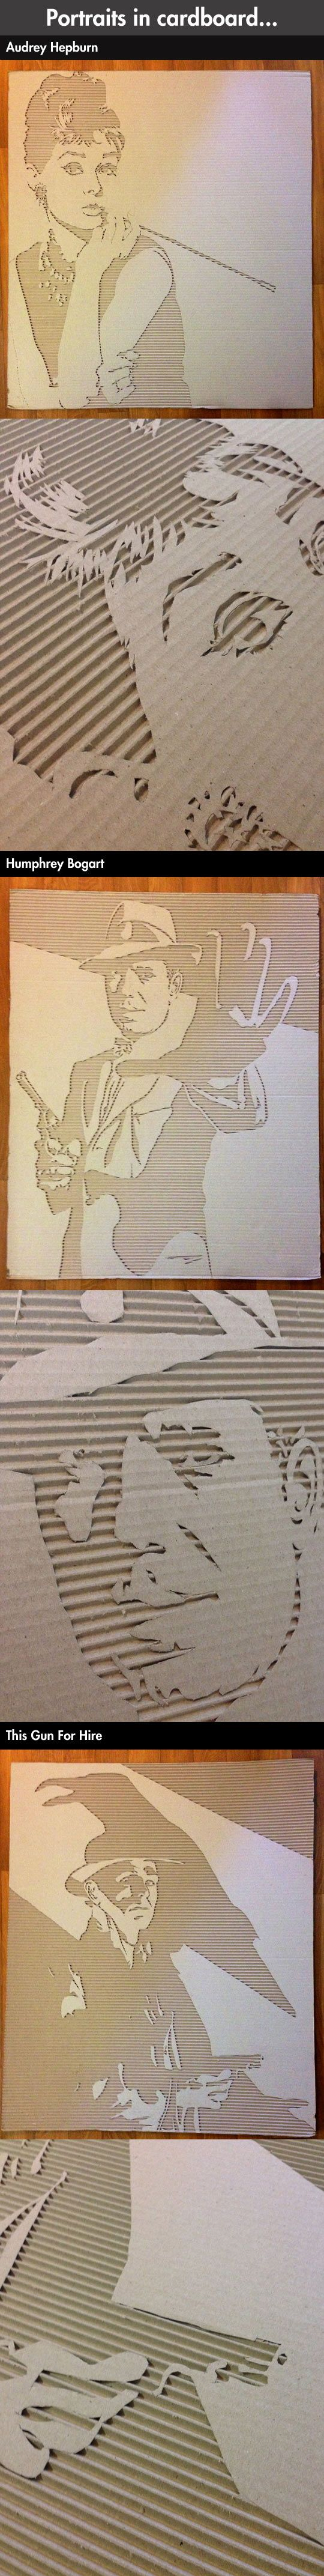 Carving portraits into cardboard // funny pictures - funny photos - funny images - funny pics - funny quotes - #lol #humor #funnypictures